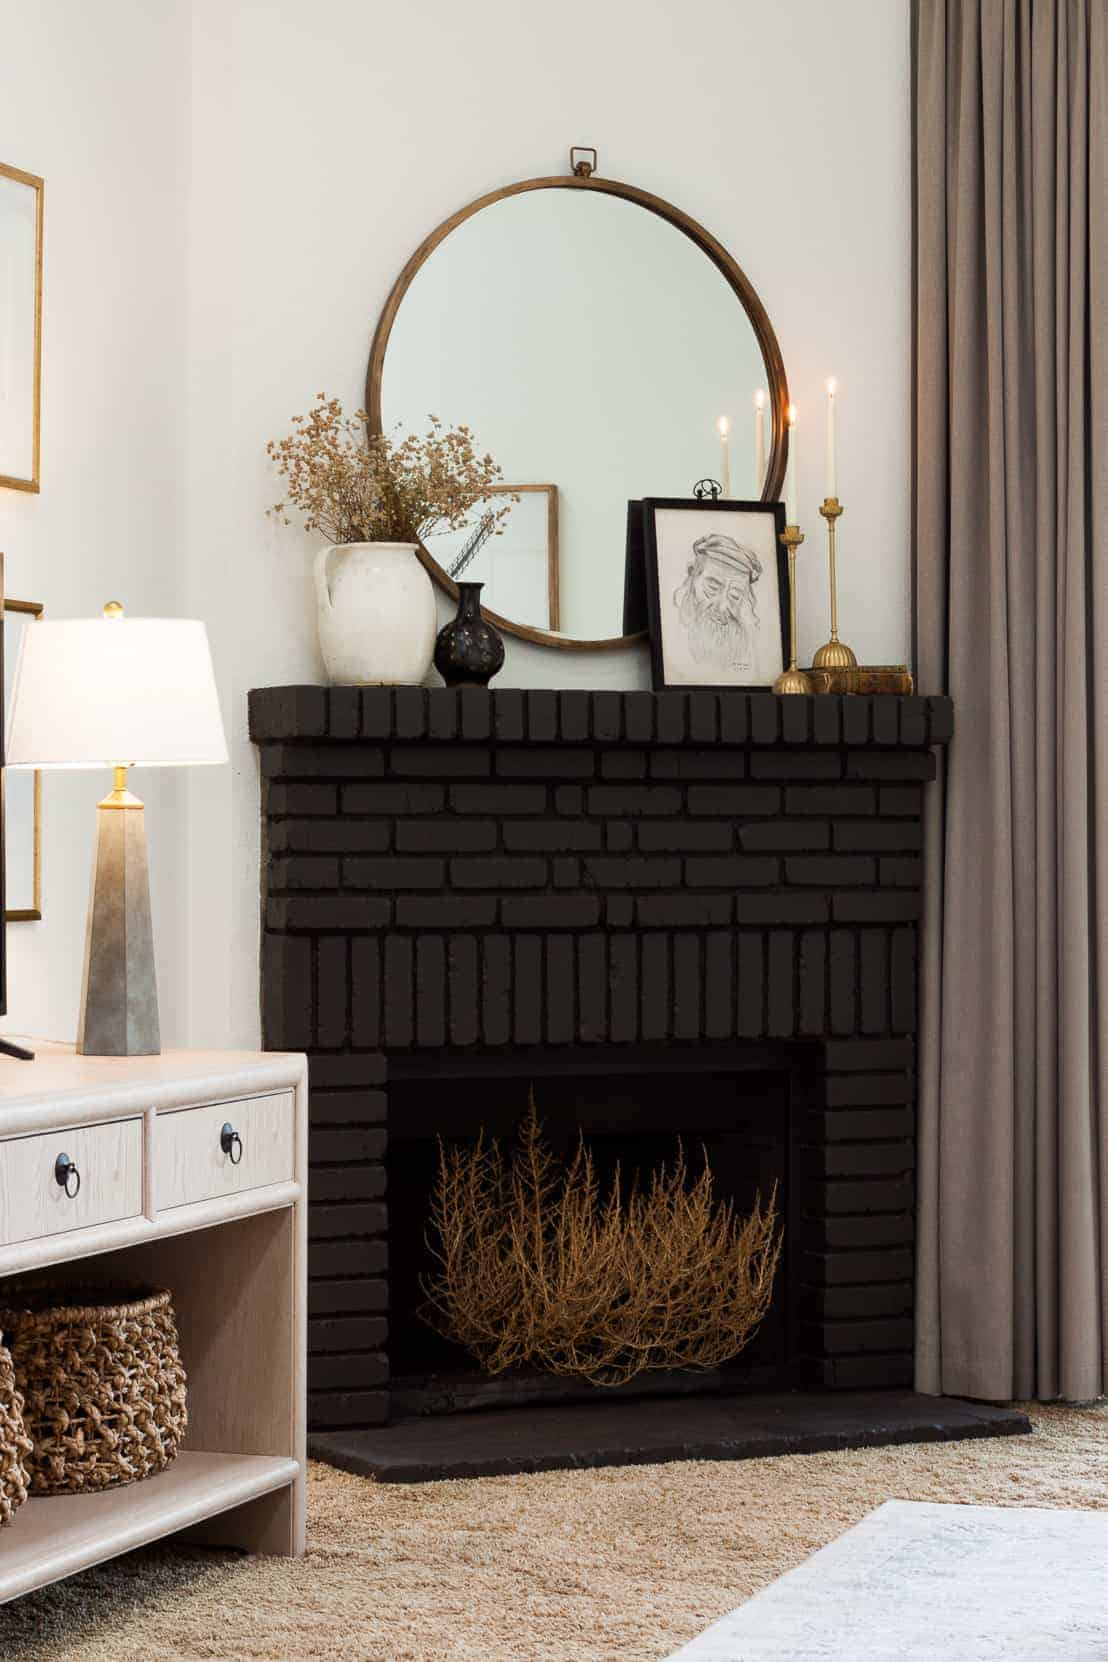 Black brick corner fireplace with tumbleweed in opening.